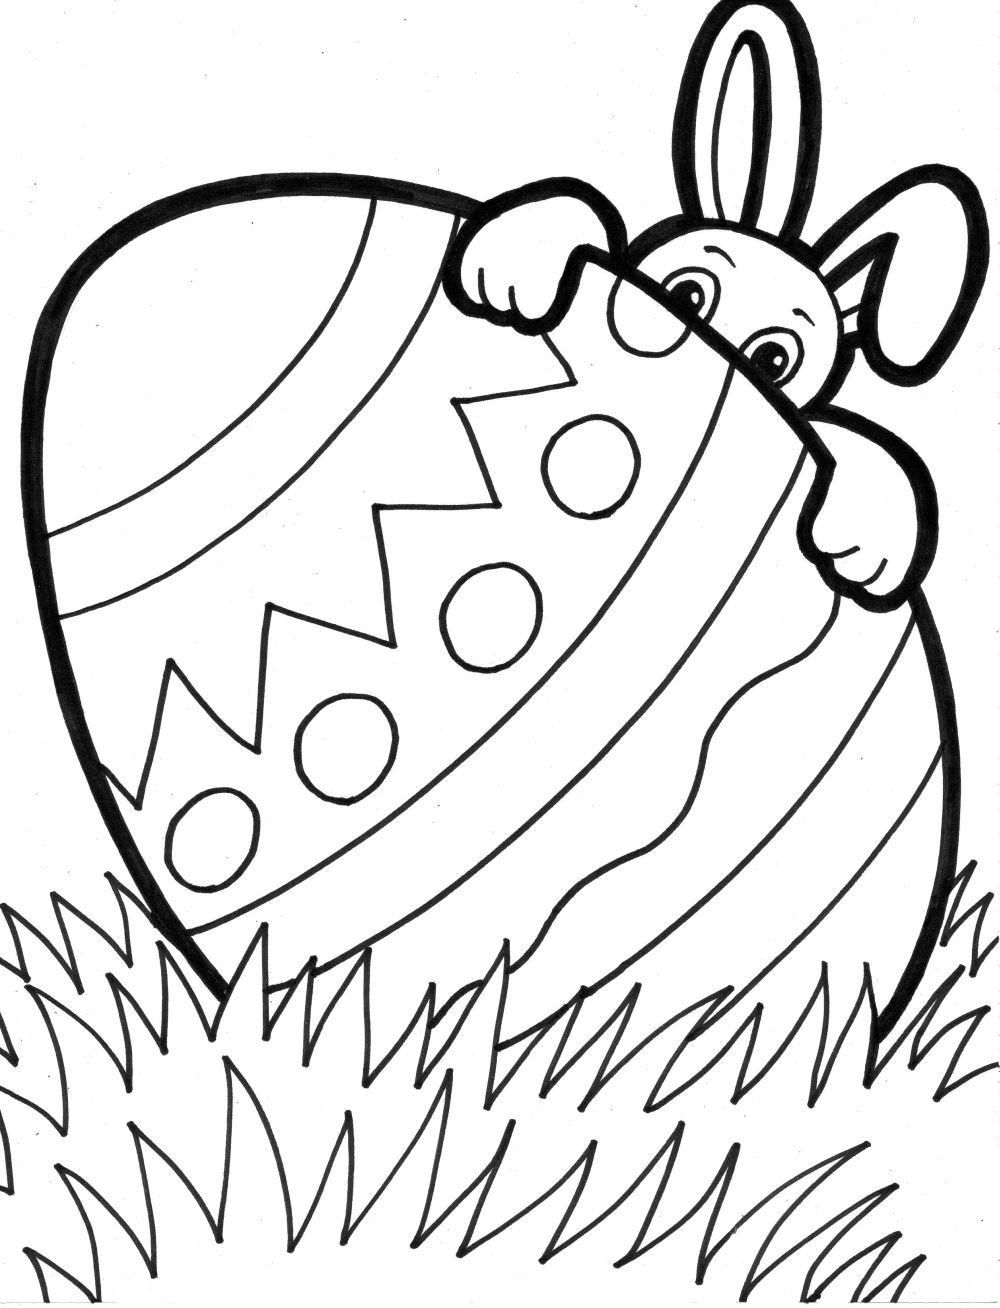 Printable Coloring Book Pages for Kids Gallery 11s - Free For Children